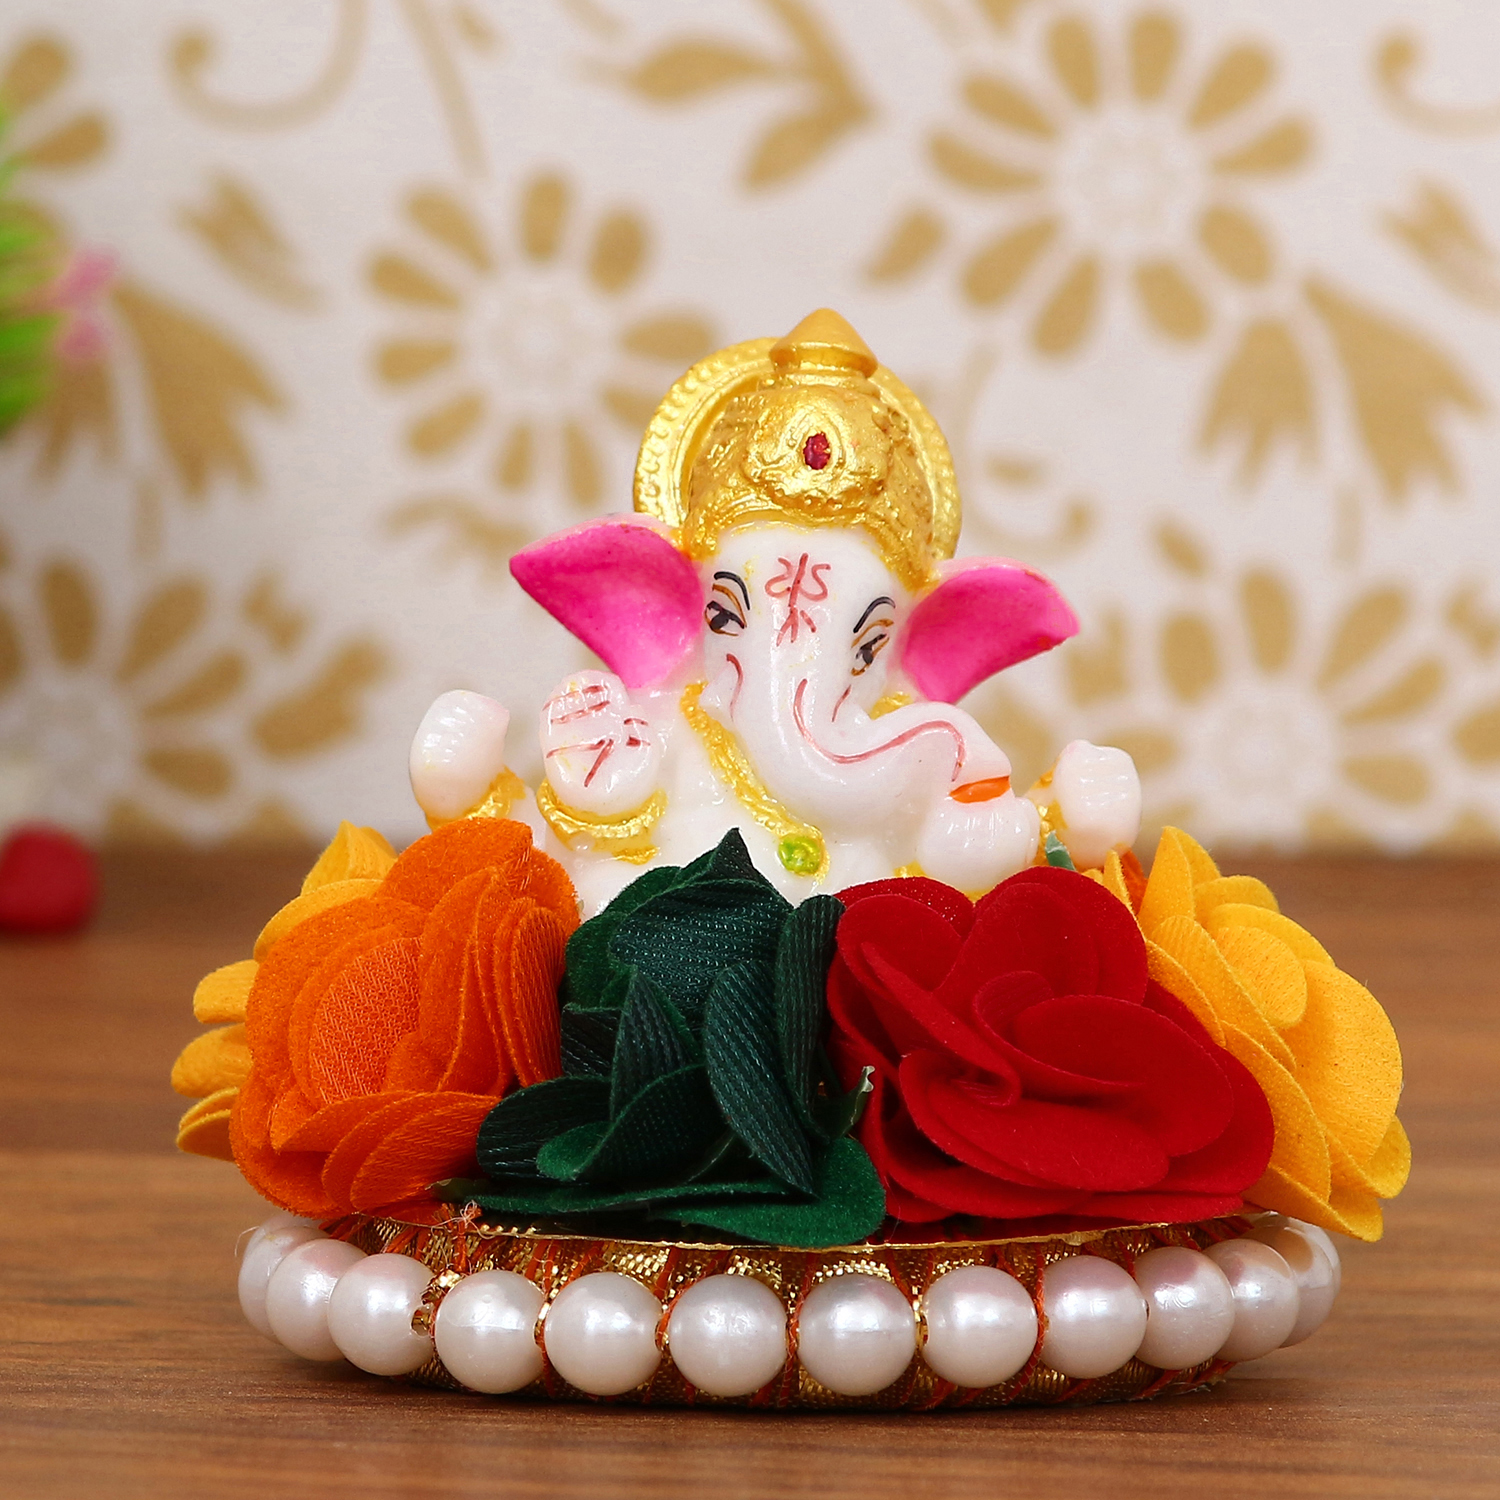 Lord Ganesha Idol on Decorative Handcrafted Plate with Colorful Flowers Indian Home Decor